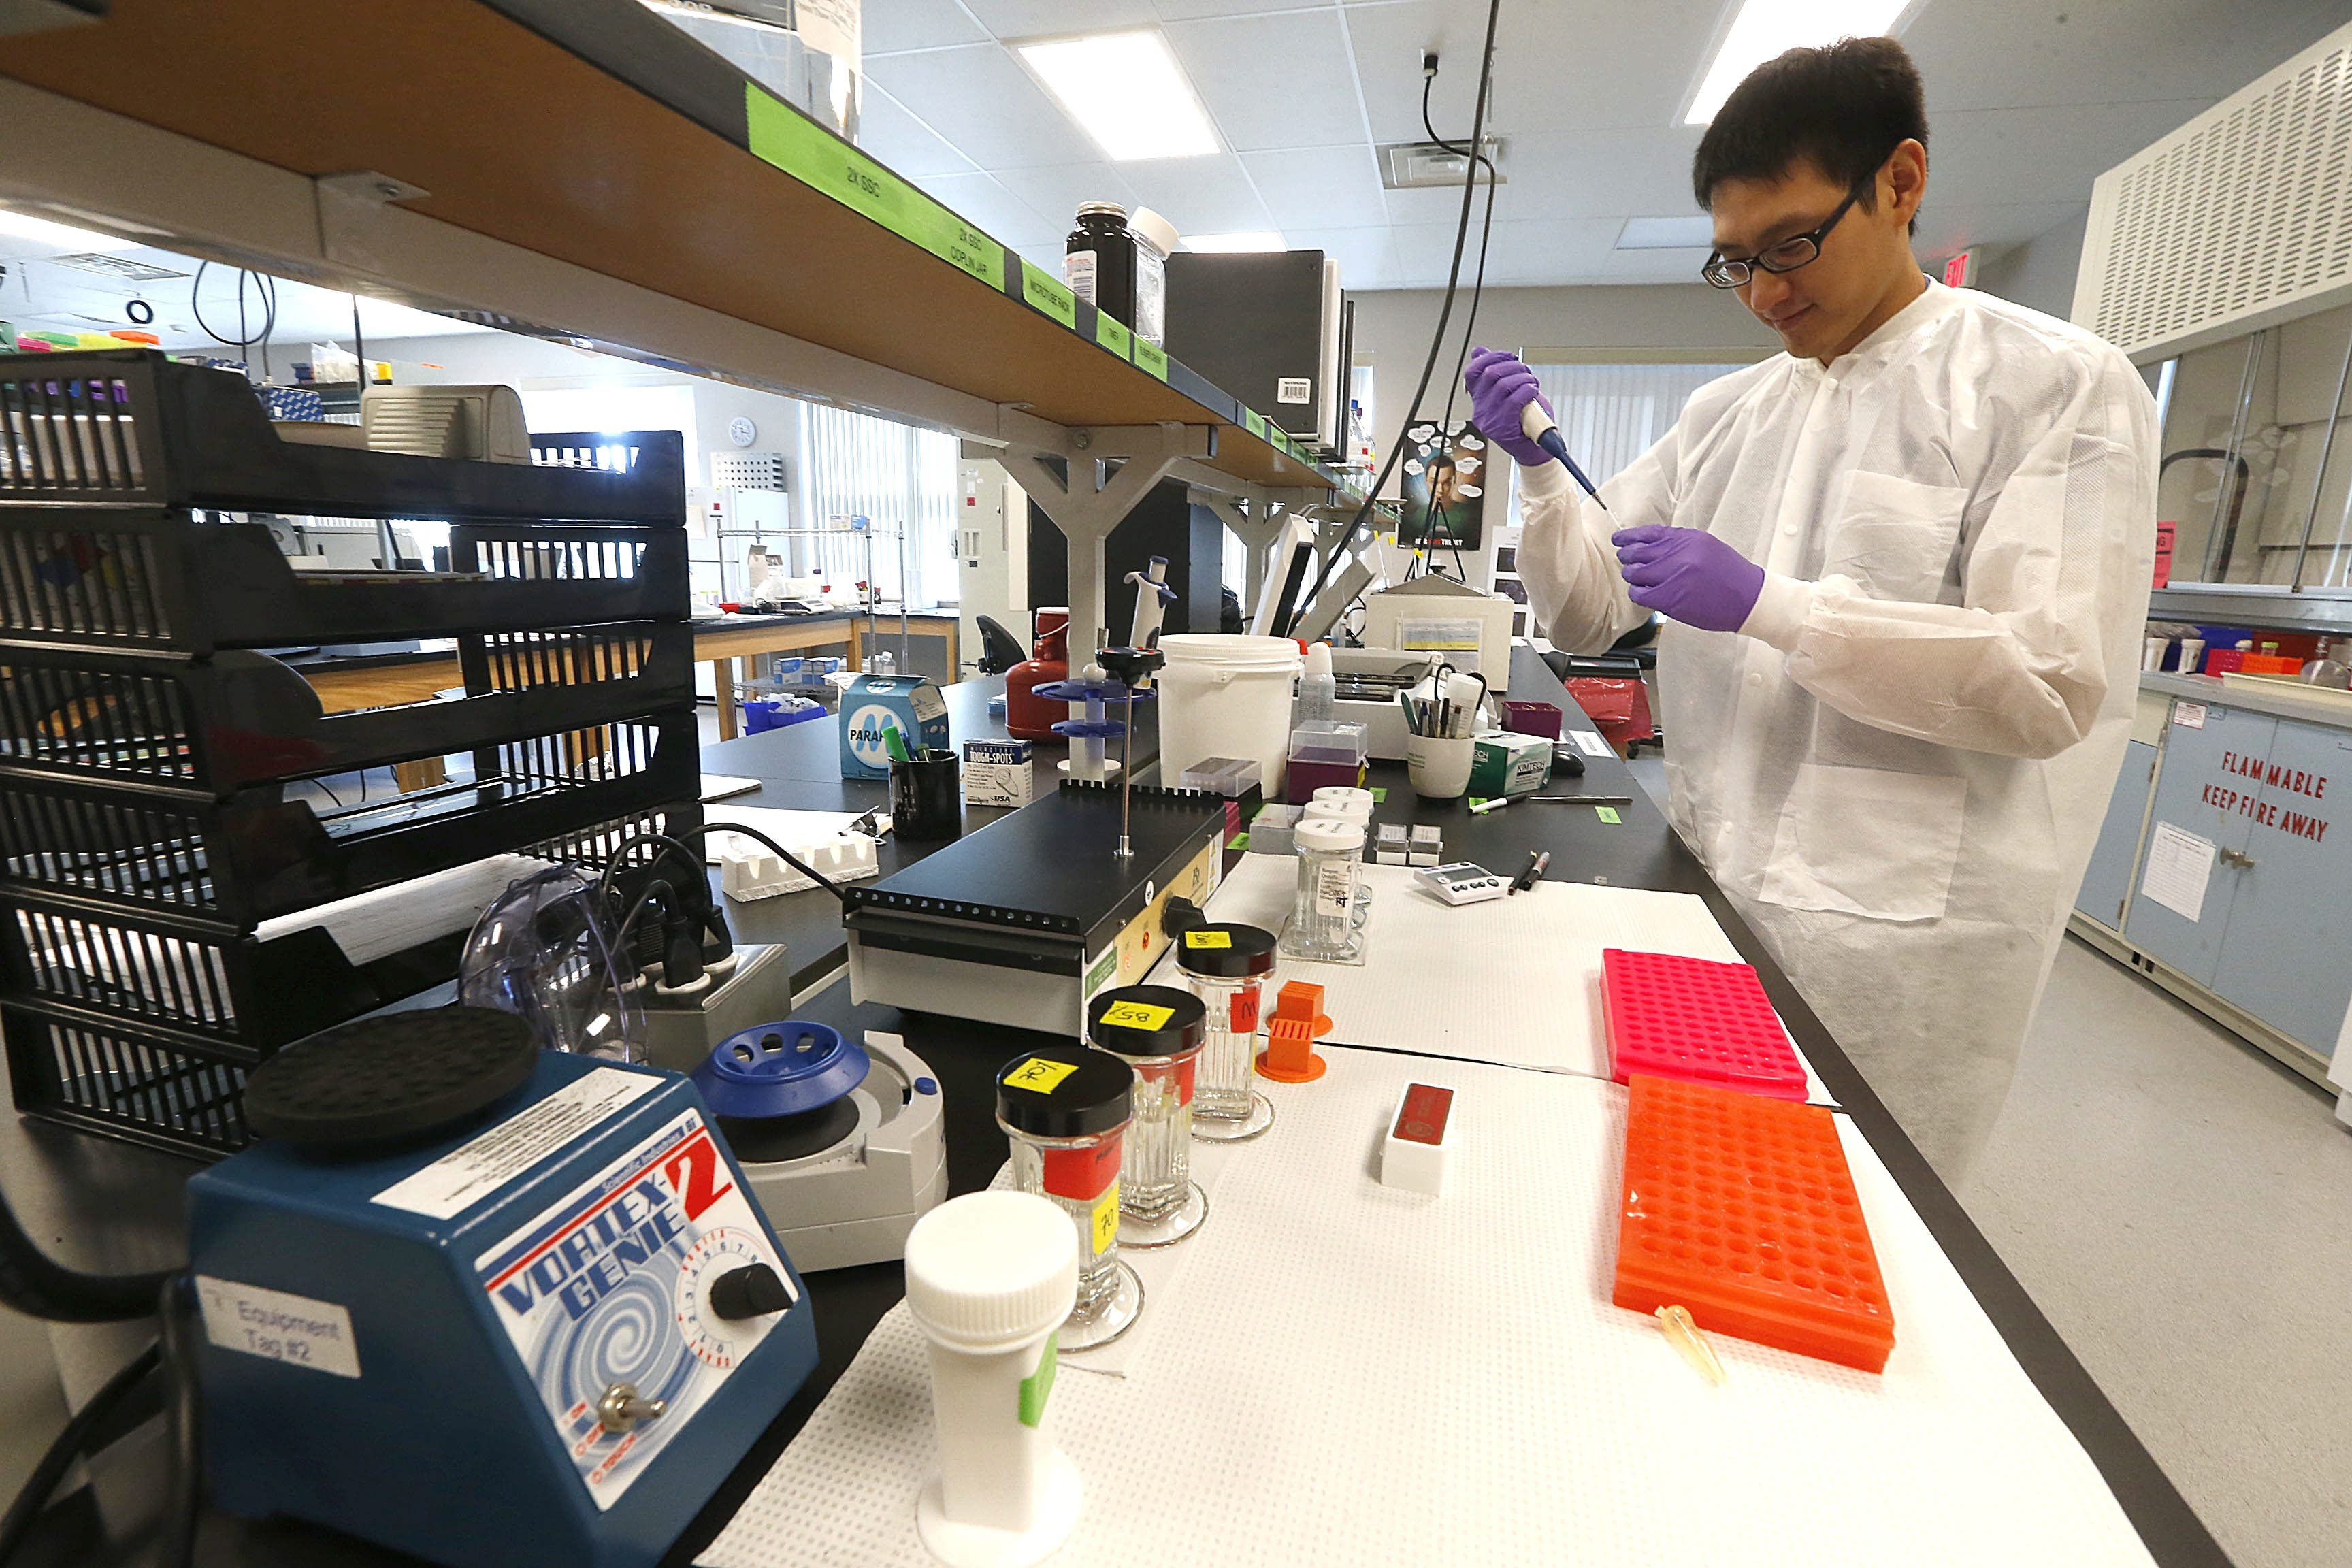 Cytogeneticist Jason Liu at work at Empire Genomics, a Buffalo firm that develops personalized medicine for cancer and other conditions.